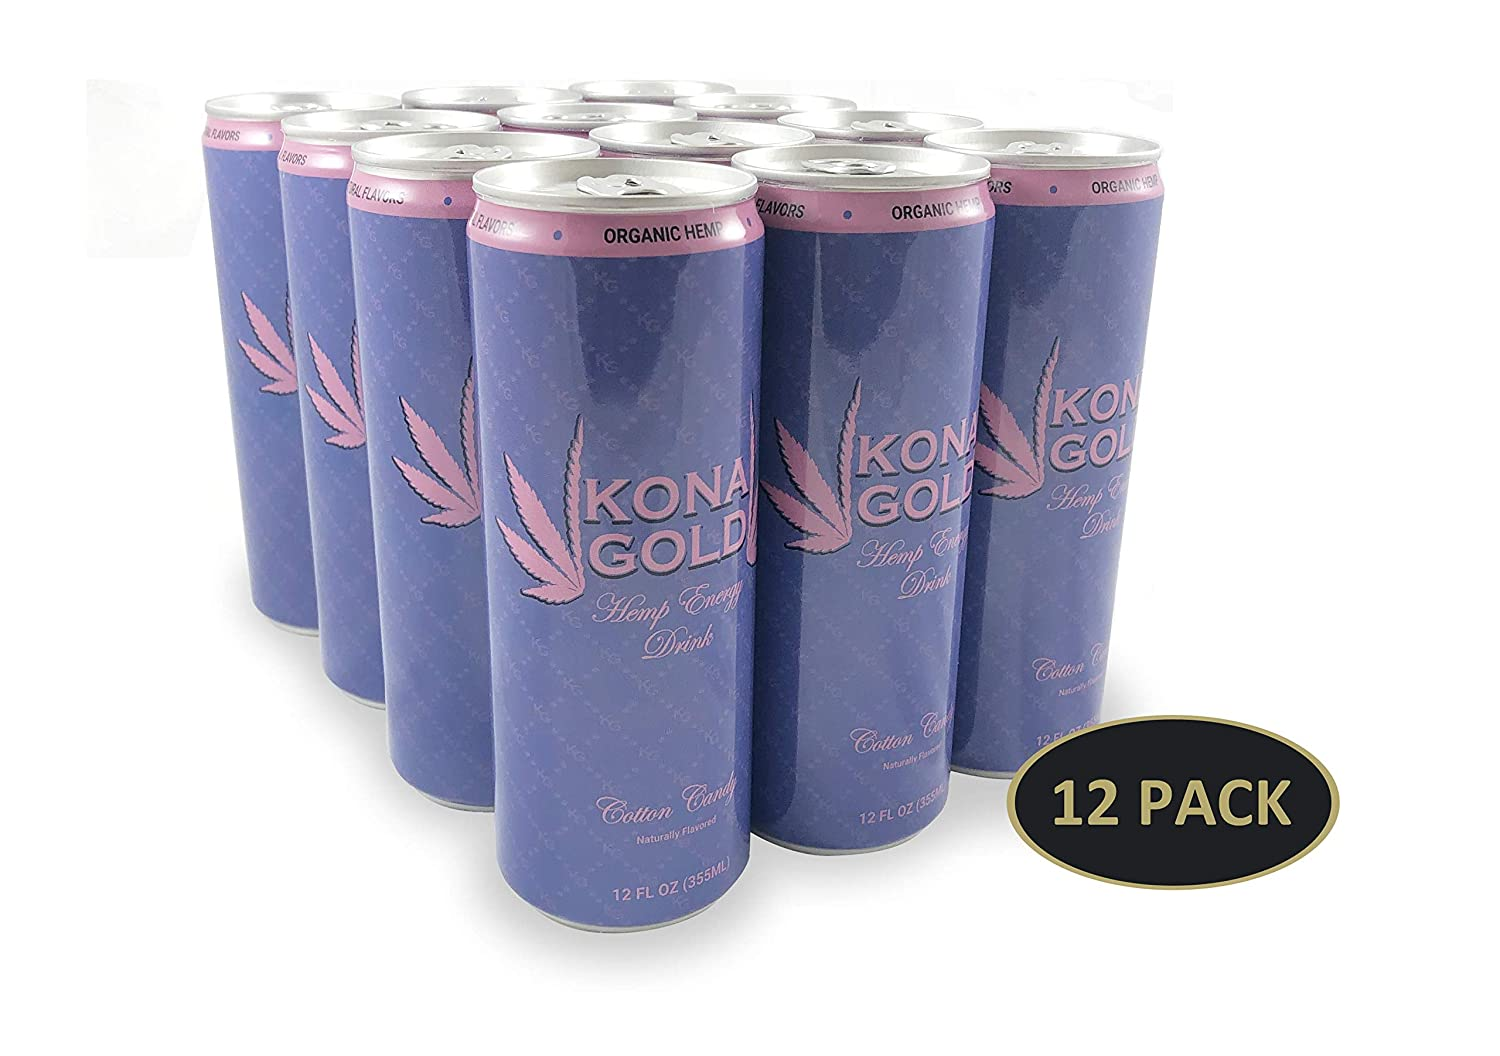 Kona Gold Cotton Candy Hemp Energy Drink 12.0 Fluid Ounces, 12 Pack, Zero Calories, Zero Sugar, Natural Flavors, Organic Hemp